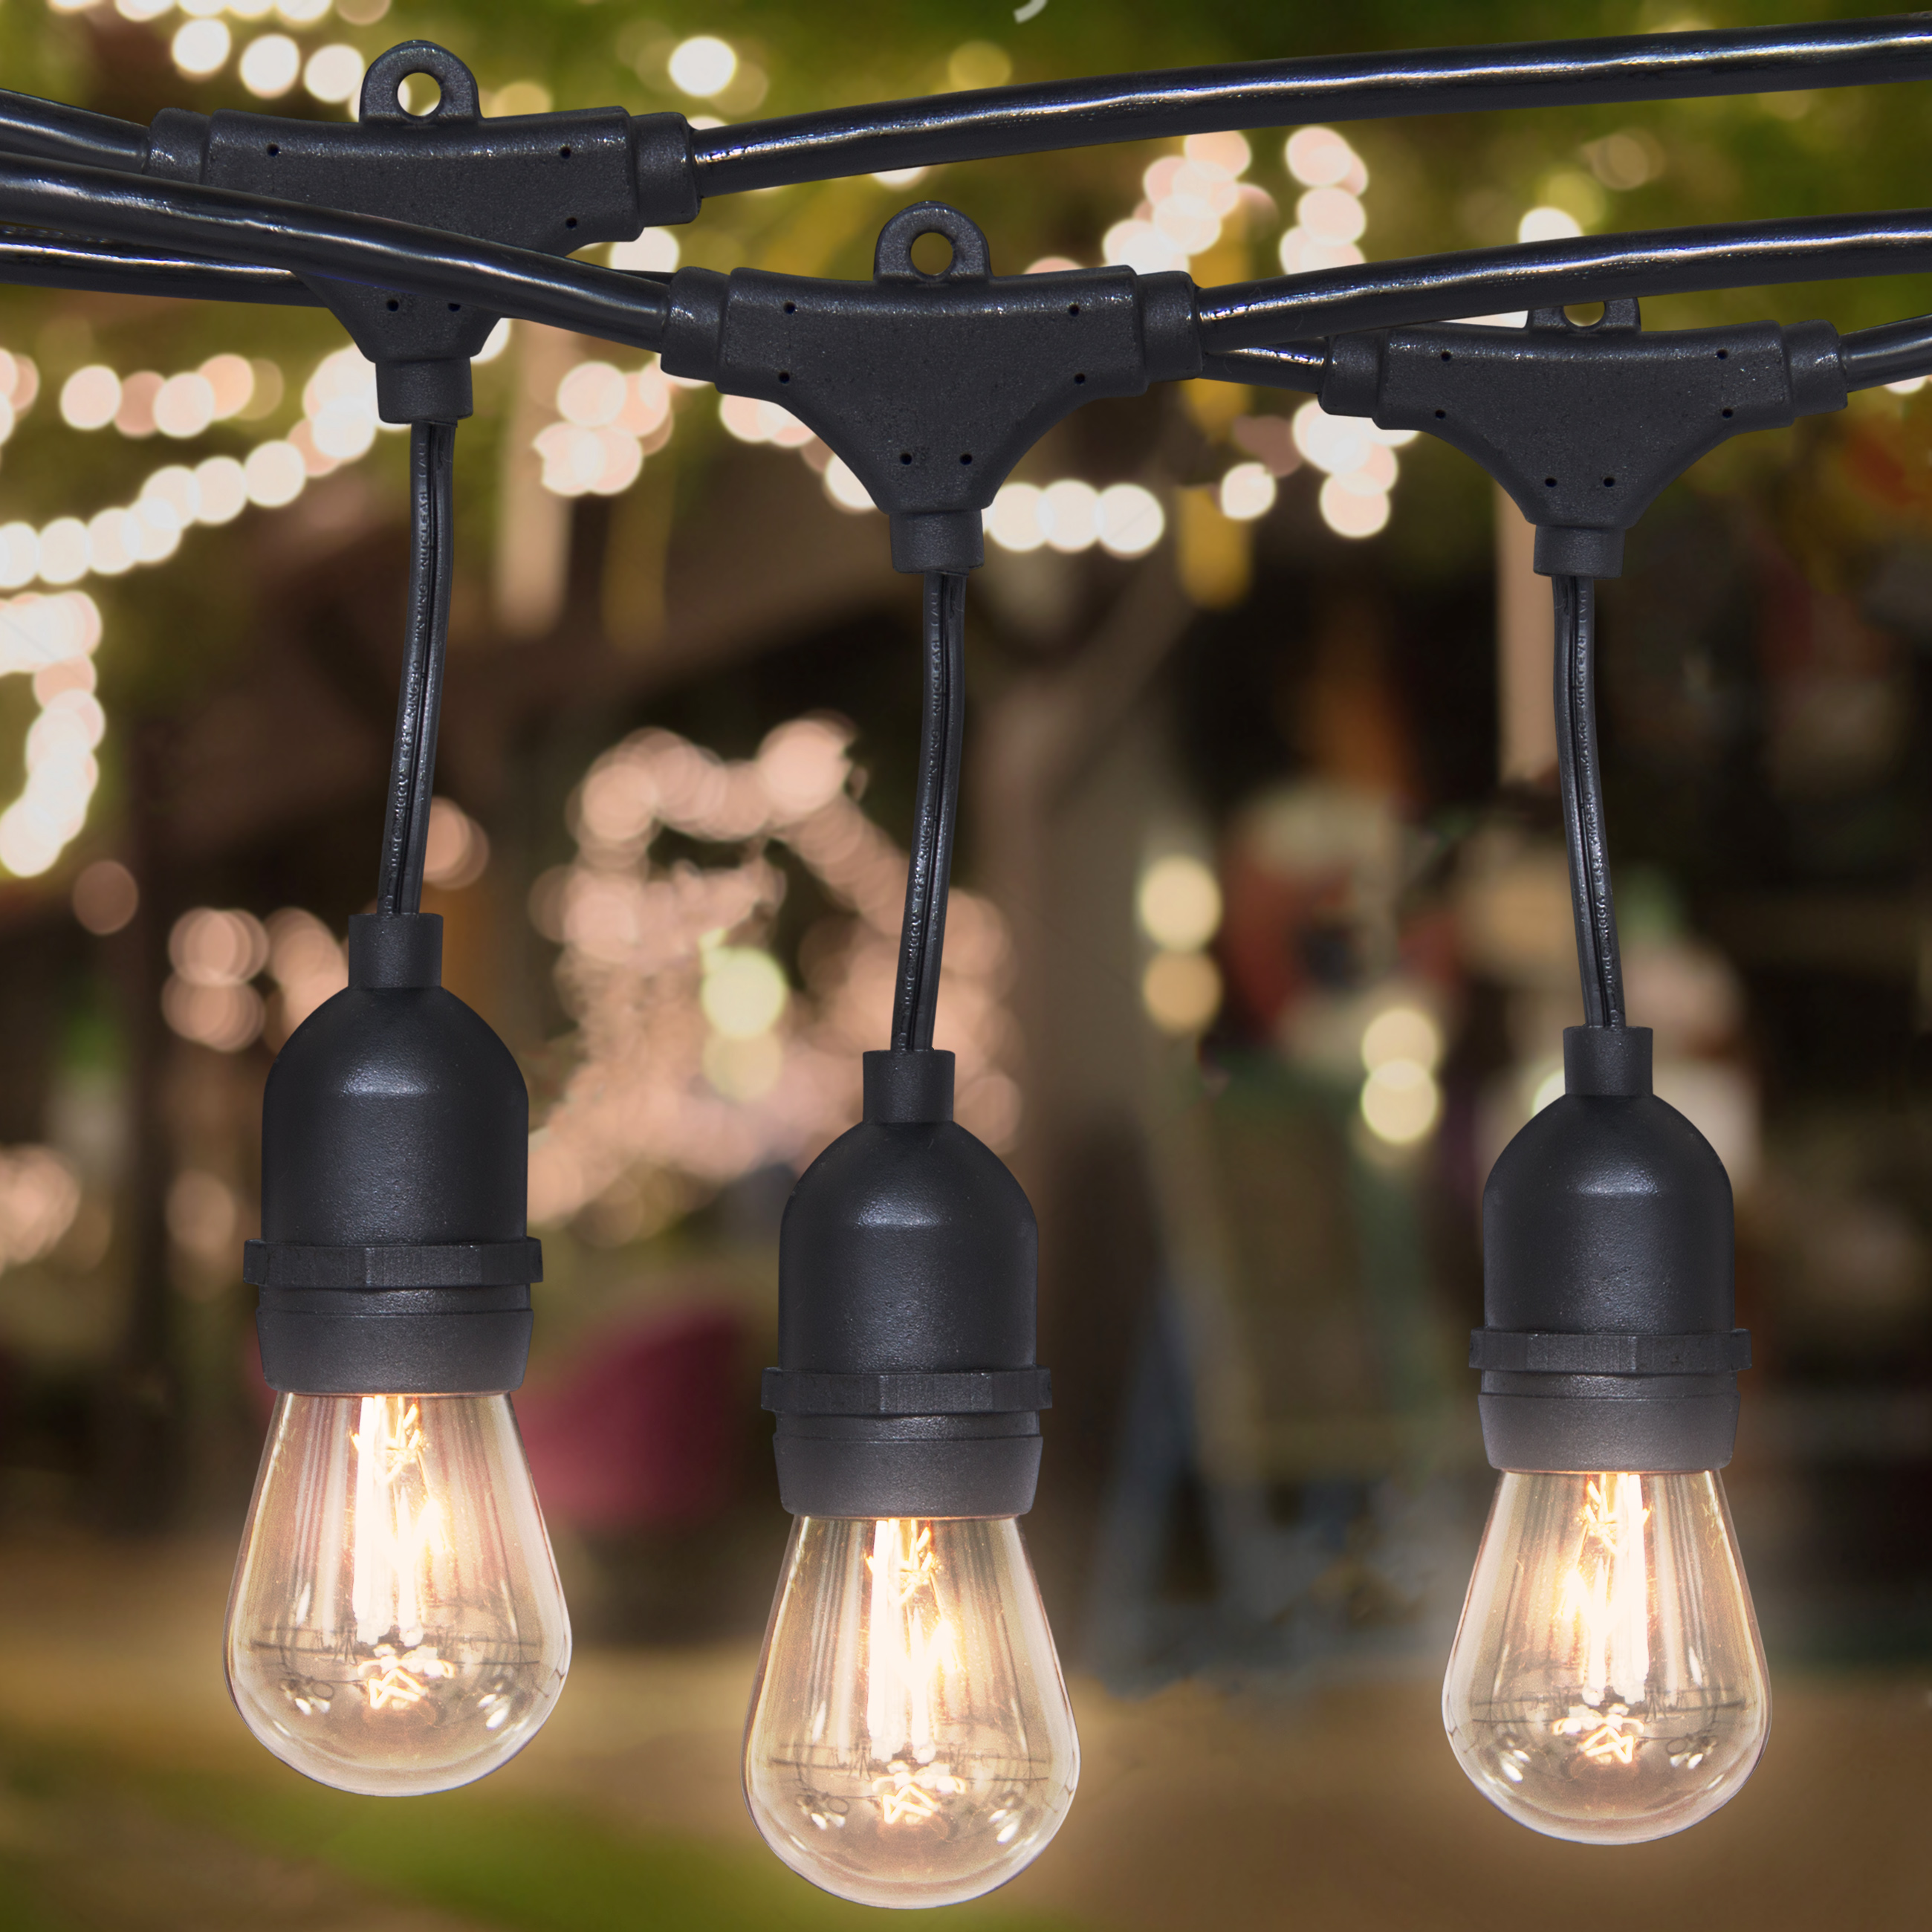 Best Choice Products Commercial Weatherproof 24' Outdoor String Lights 12 Clear Bulbs- Party, Restaurant, Patio Lights by